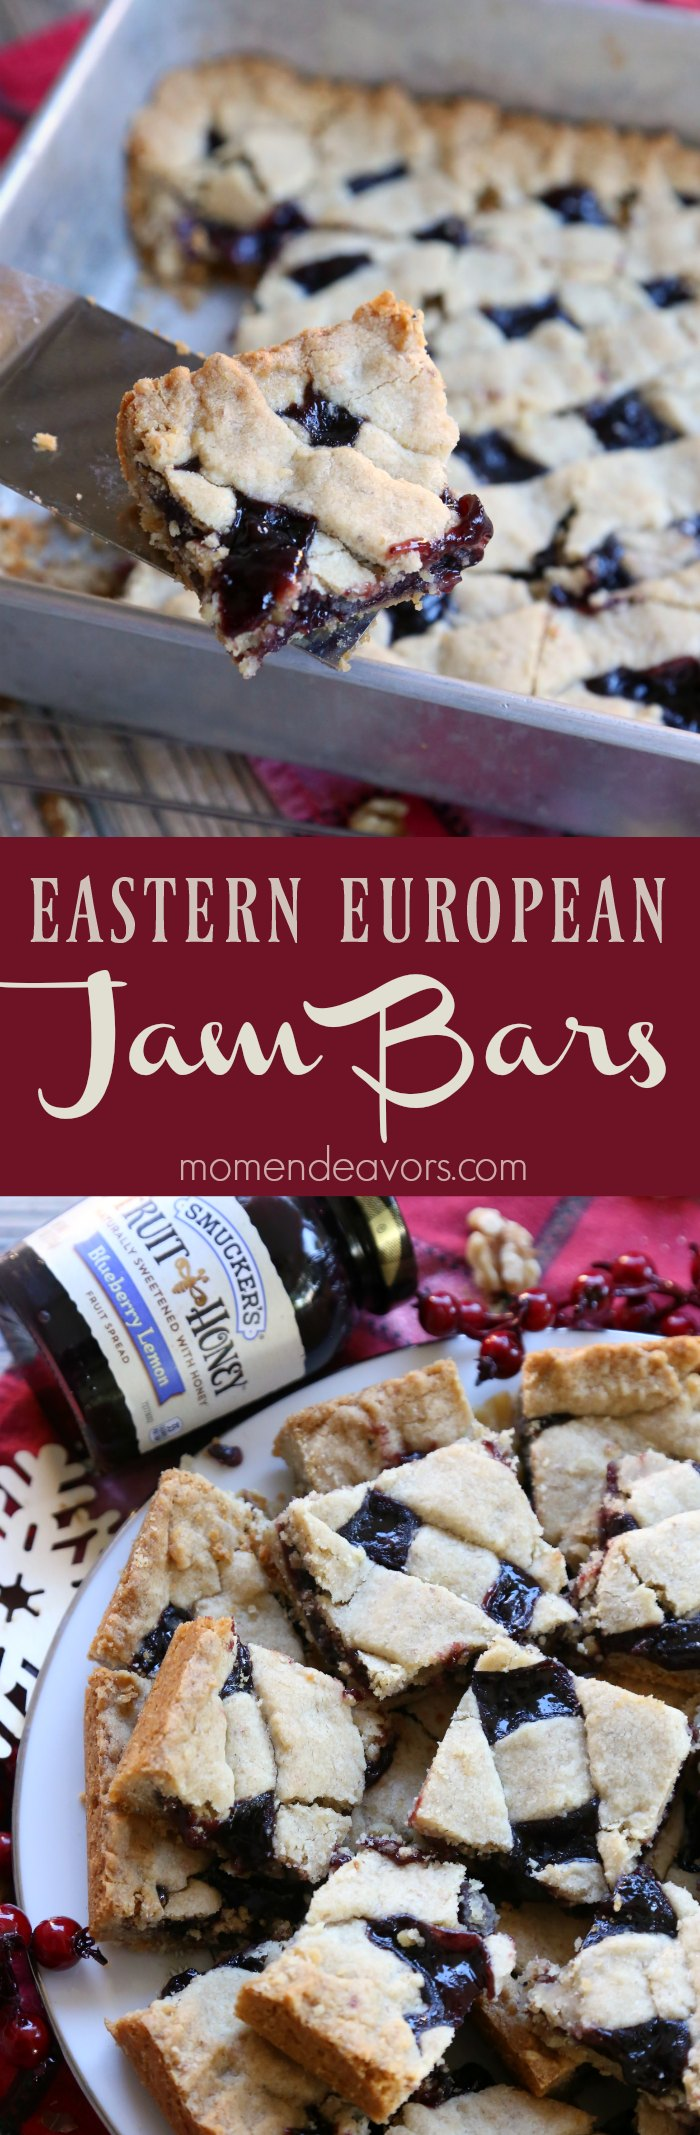 Traditional European Jam Pastry Bars